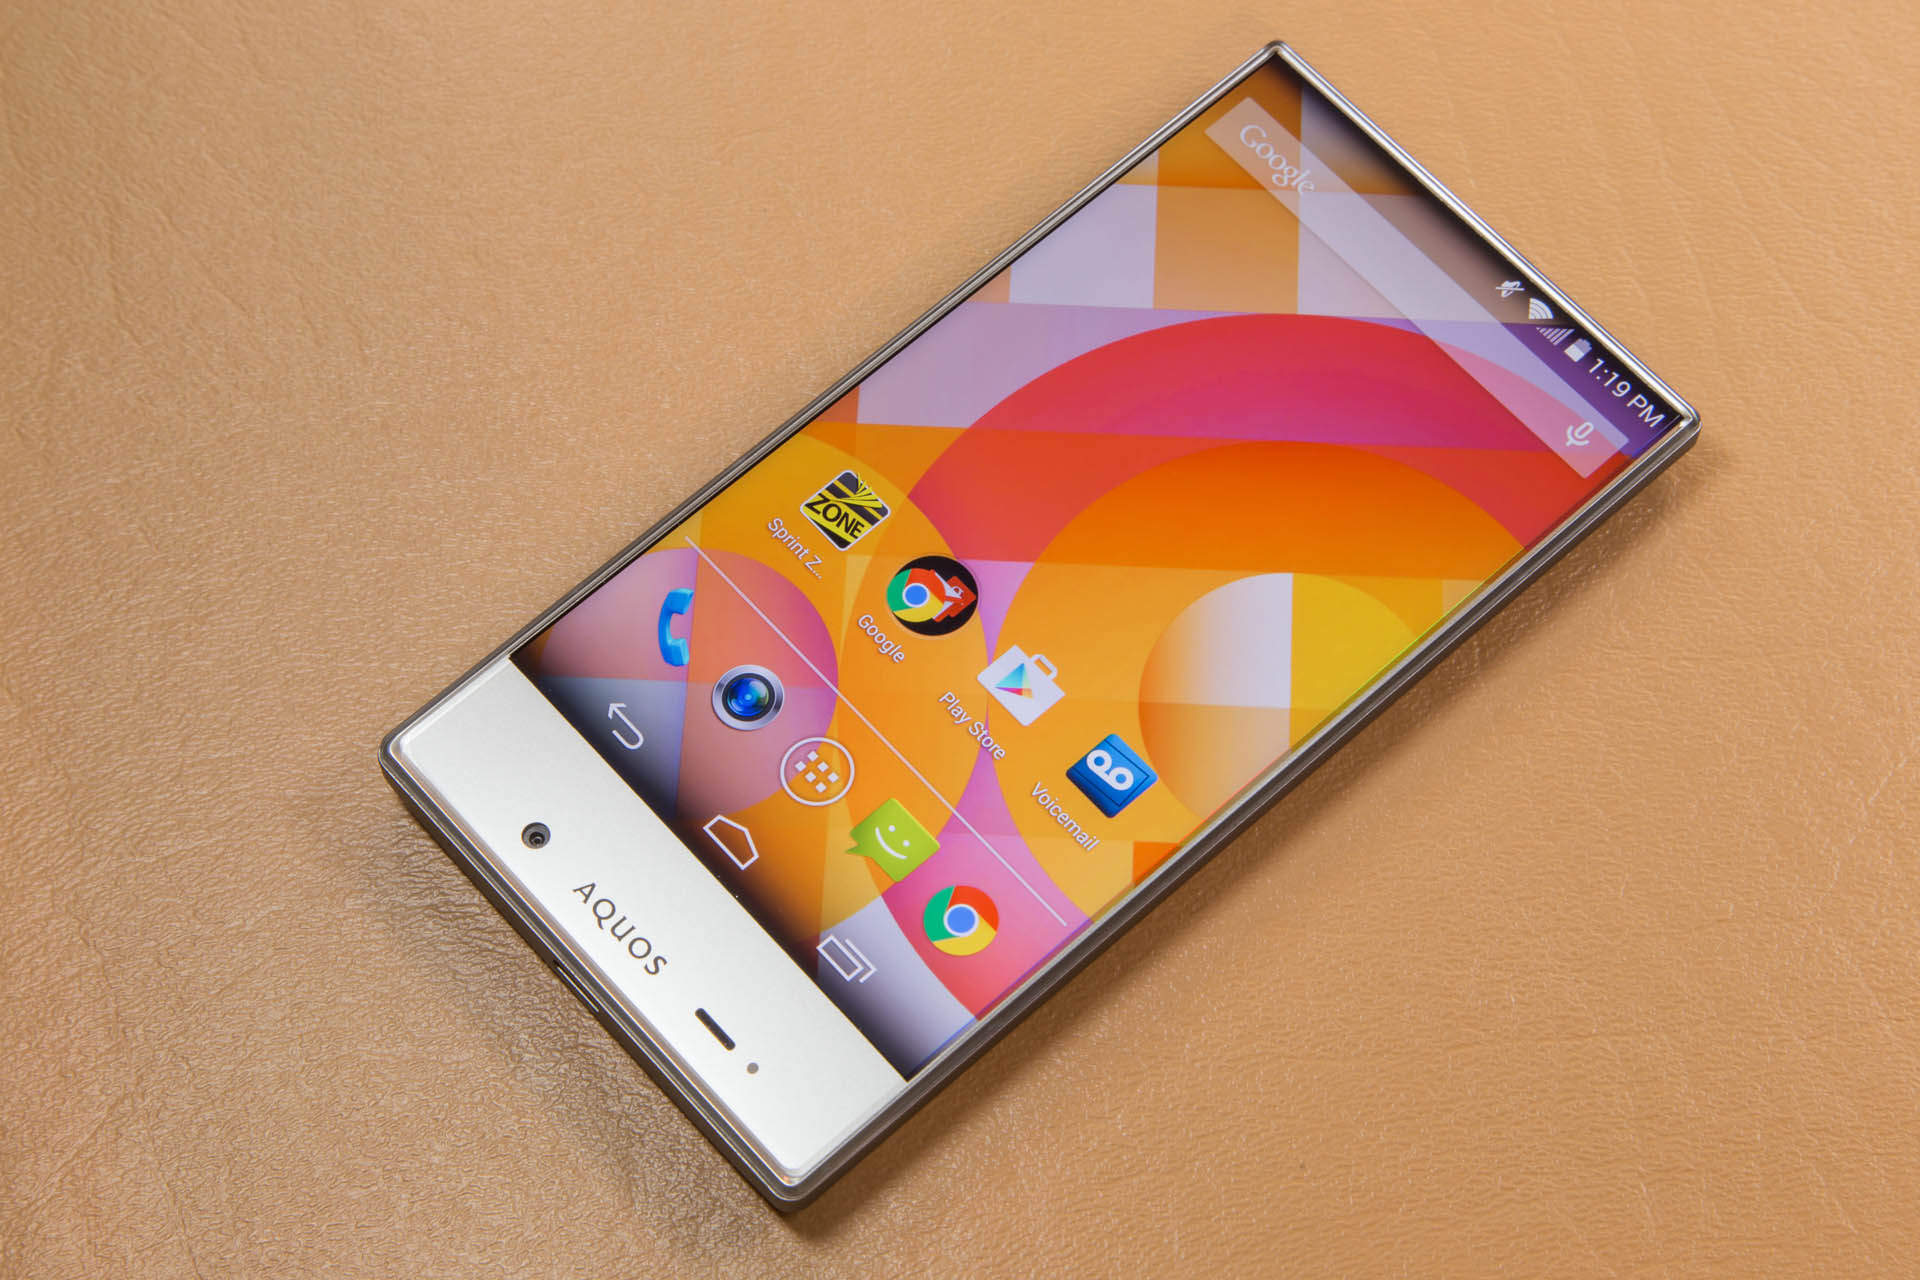 Sharp Aquos Crystal A 240 Smartphone That Out Designs Most Flagships Ars Technica